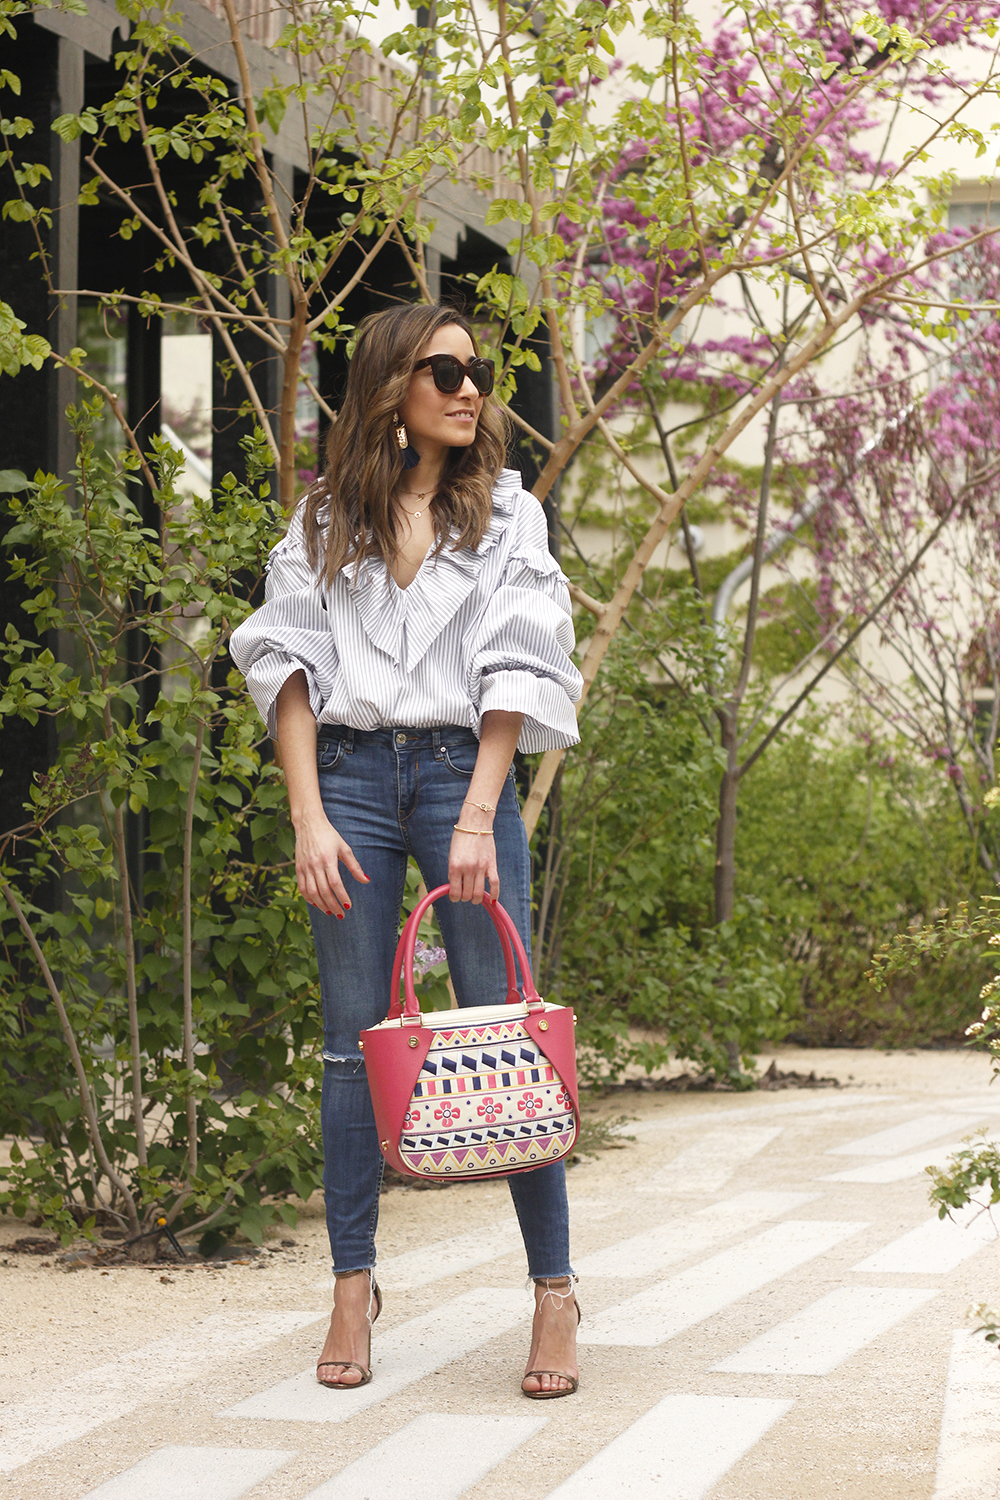 Ruffled striped shirt jeans céline sunnies sandals pamapamar bag accessories spring outfit style fashion13